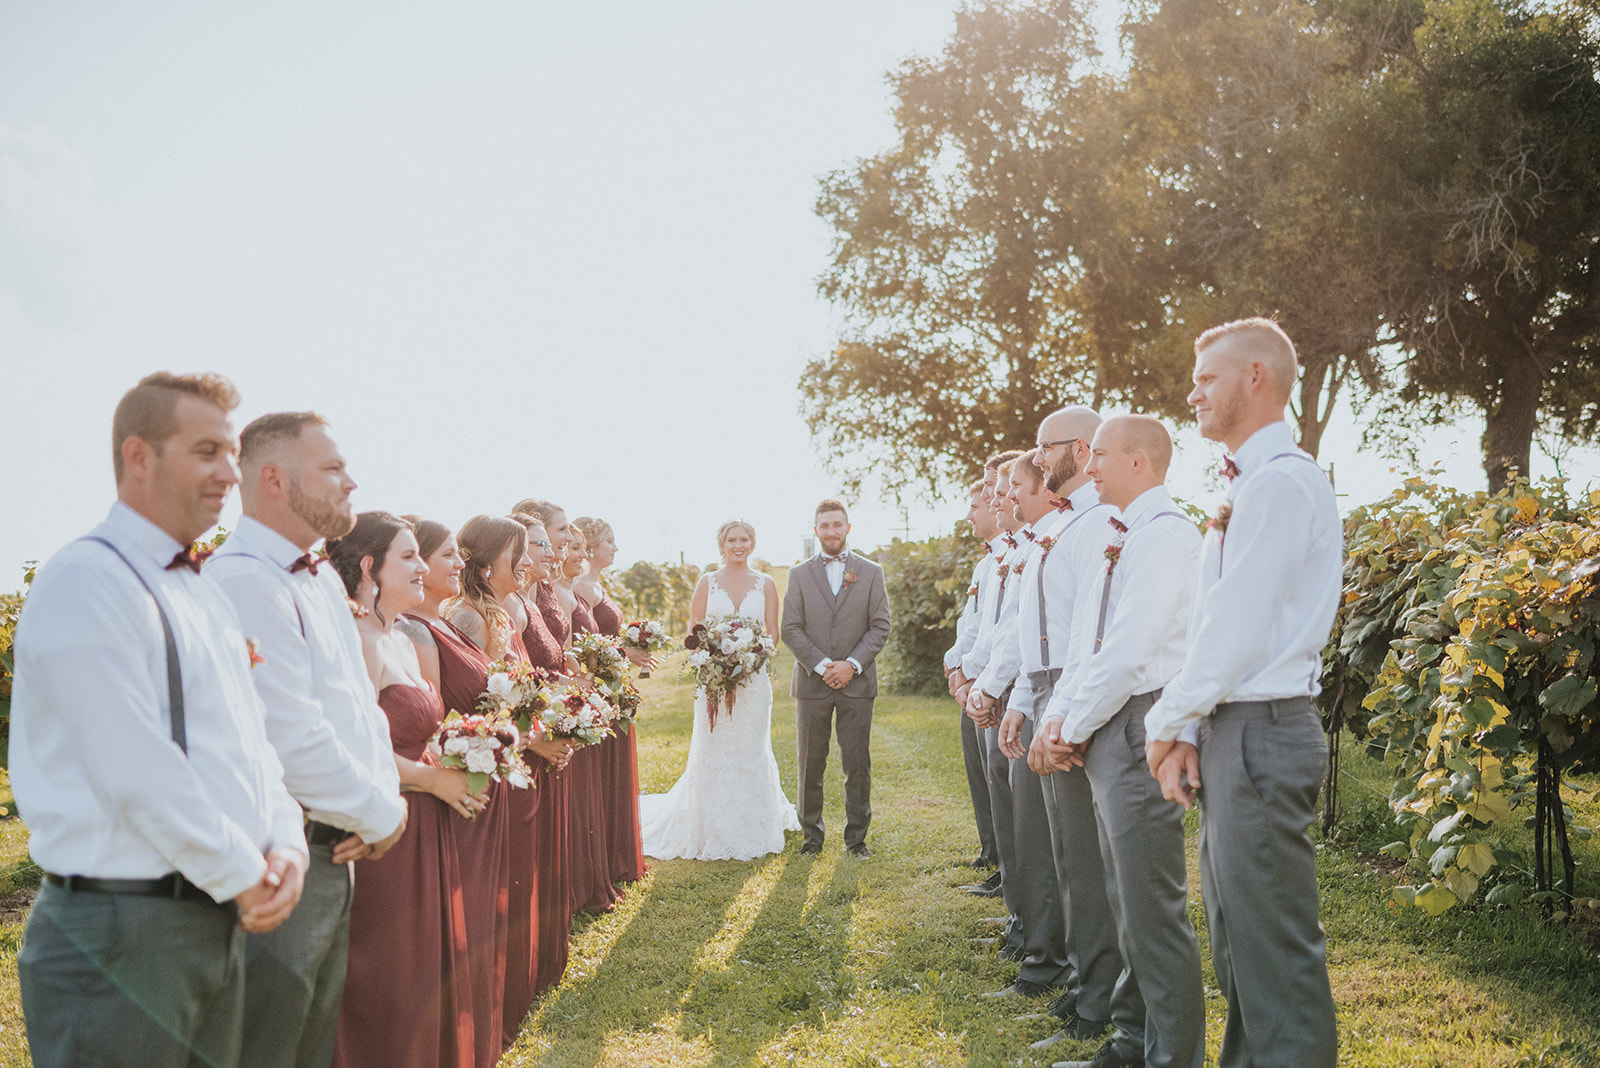 overthevineswisconsinwedding_0836.jpg